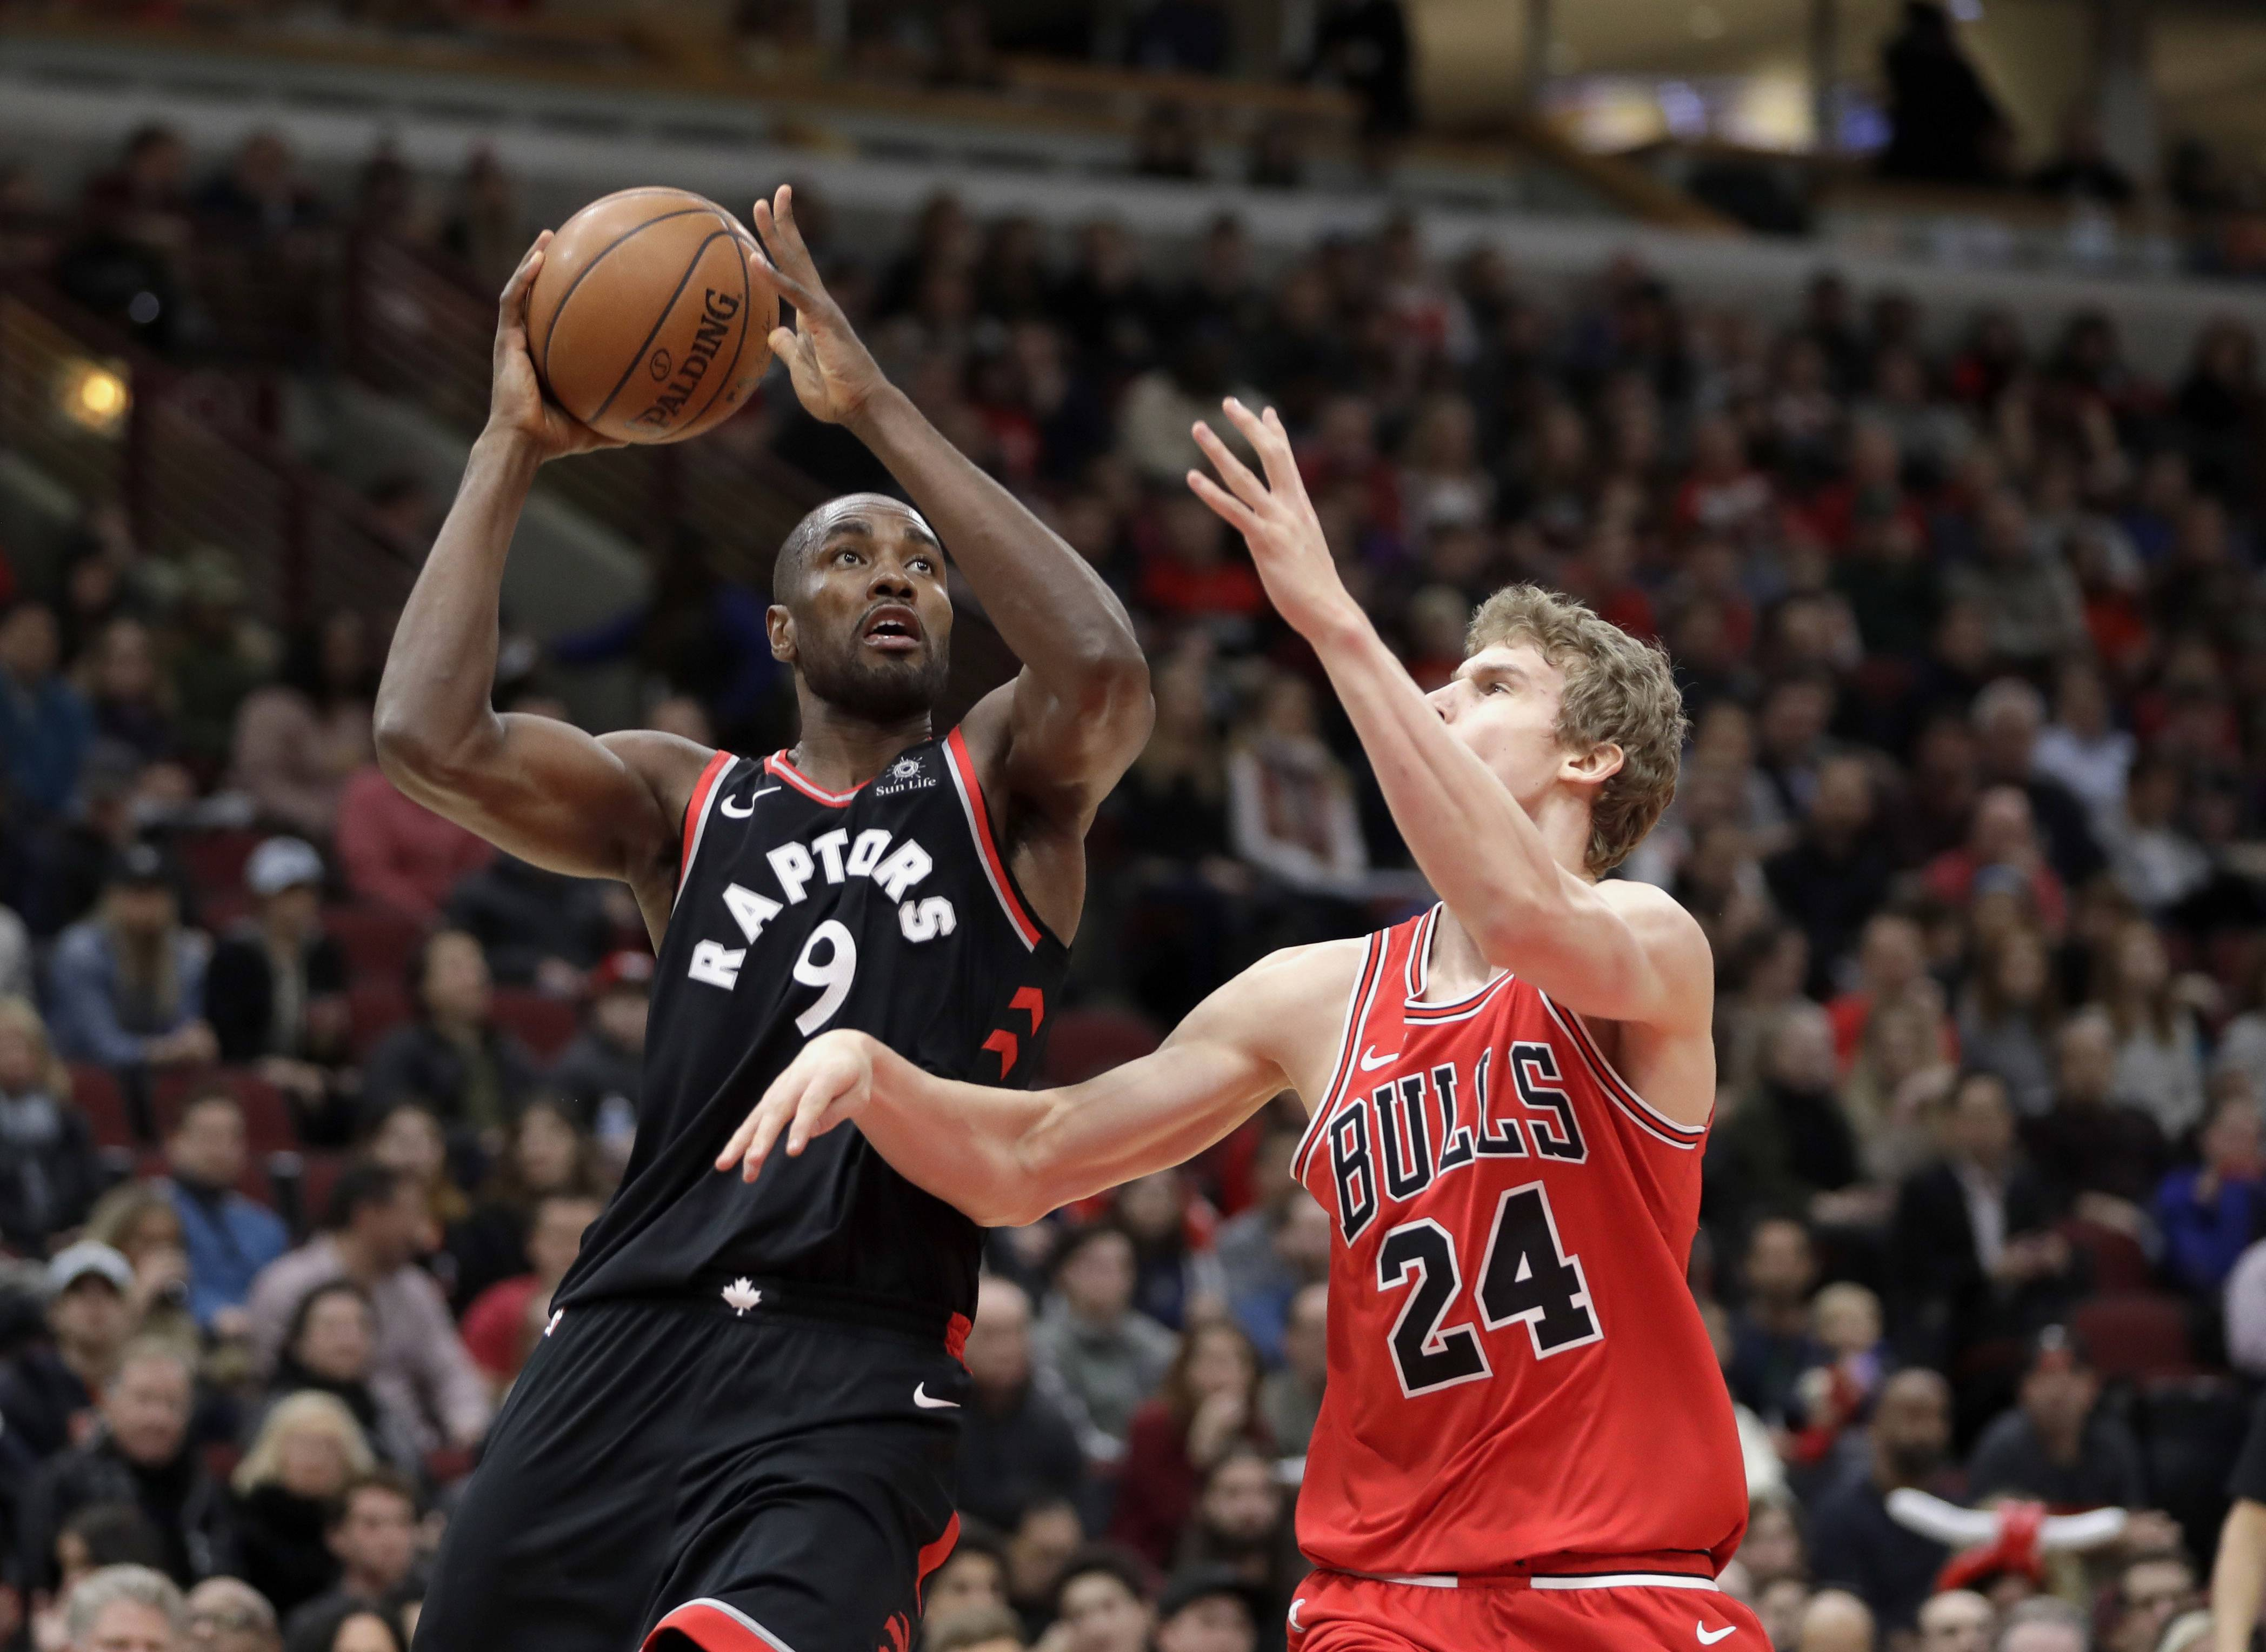 Chicago Bulls' second unit gets taken to cleaners in loss to Toronto